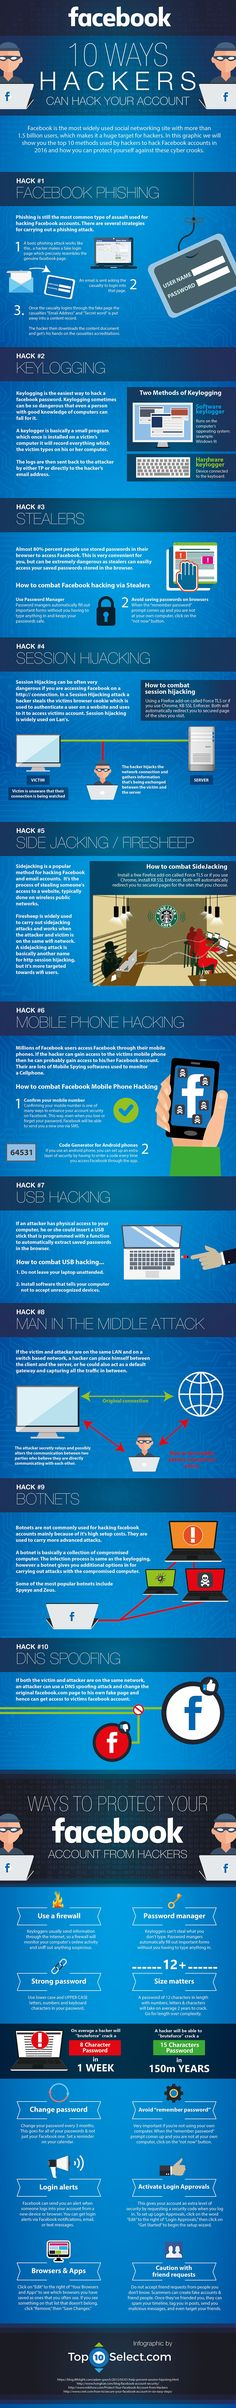 Facebook: 10 ways hackers can hack your account #infographic